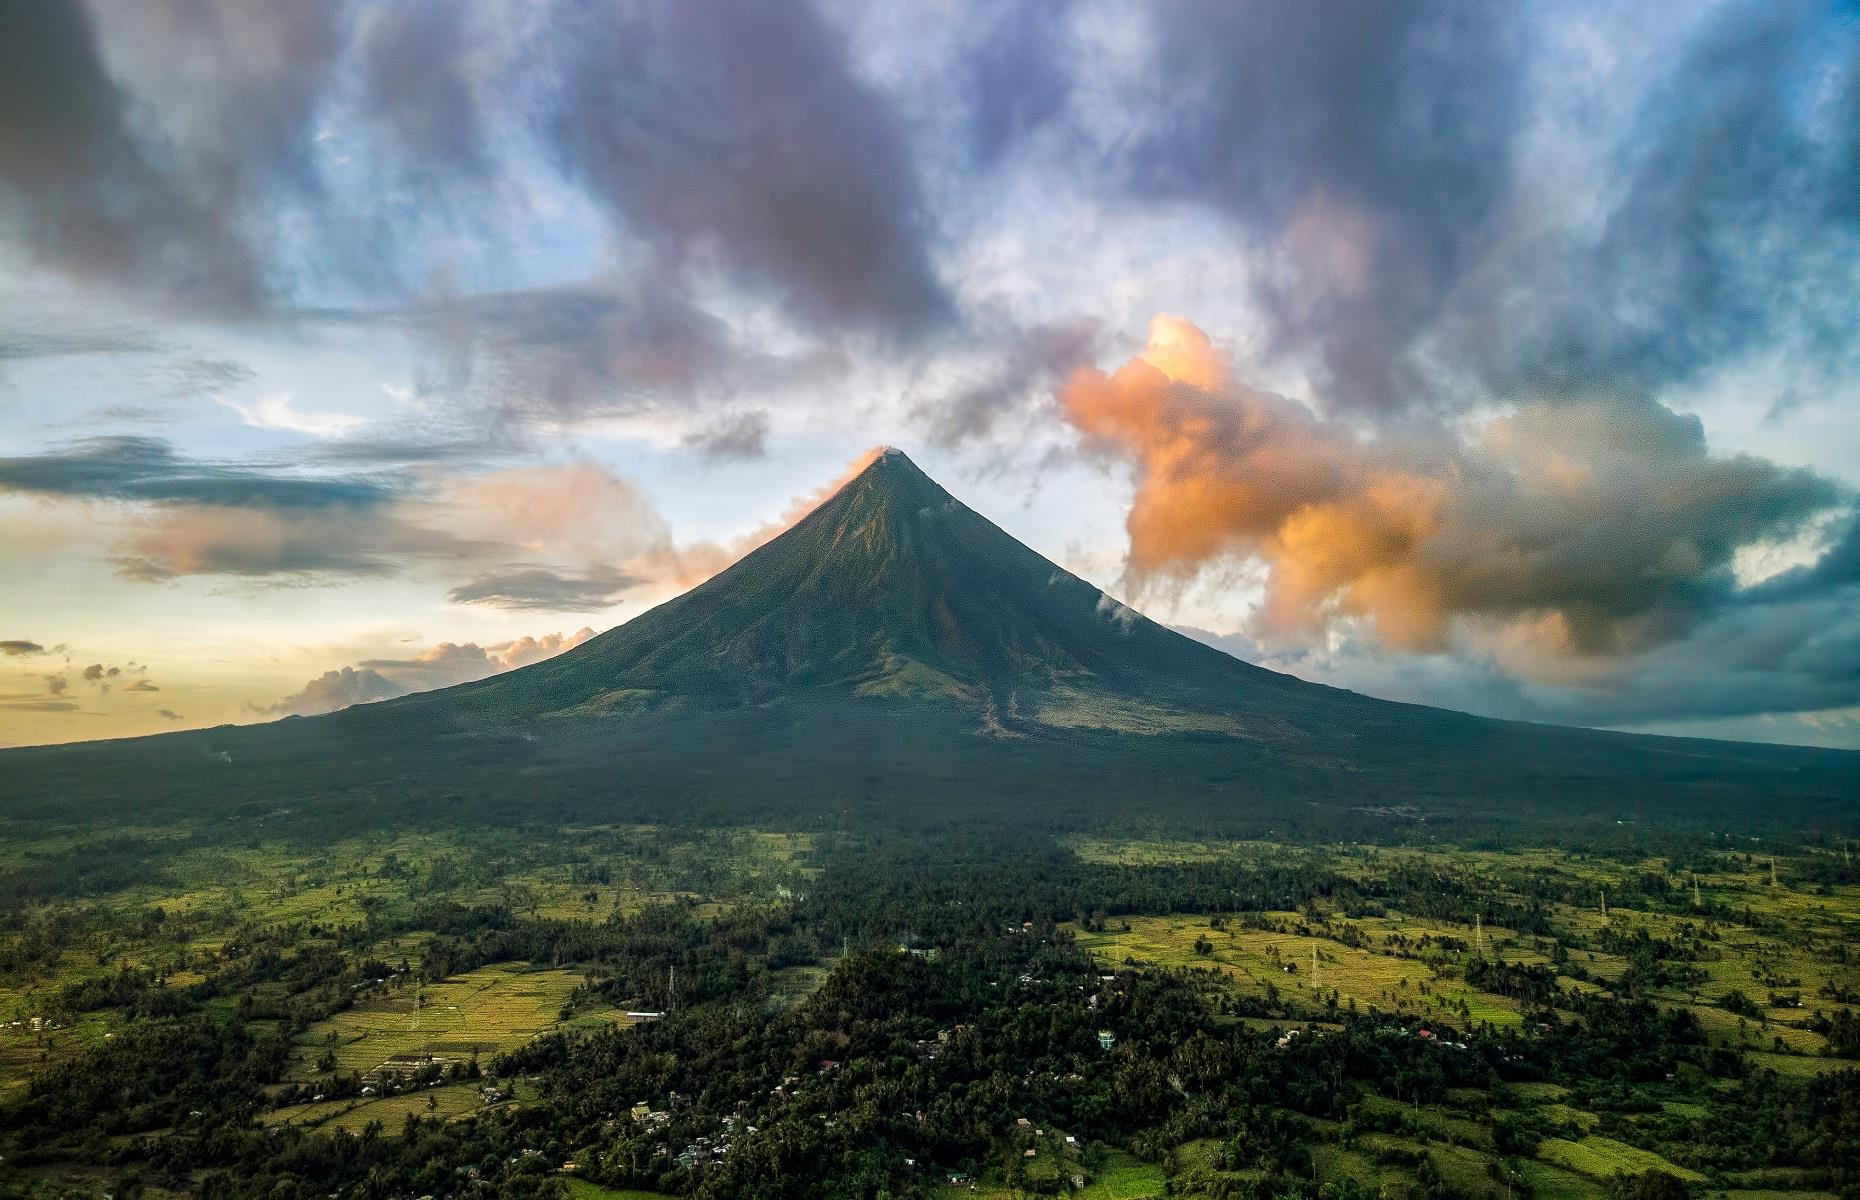 Slide 46 of 59: Famed for its iconic shape, many adore Mayon Volcano for being pleasingly symmetrical. Also known as Mount Mayon, the volcano is considered sacred to locals and stretches up 8,077 feet (2,462m). Frequently active, it last erupted in 2018 and is just as beautiful as it is powerful.